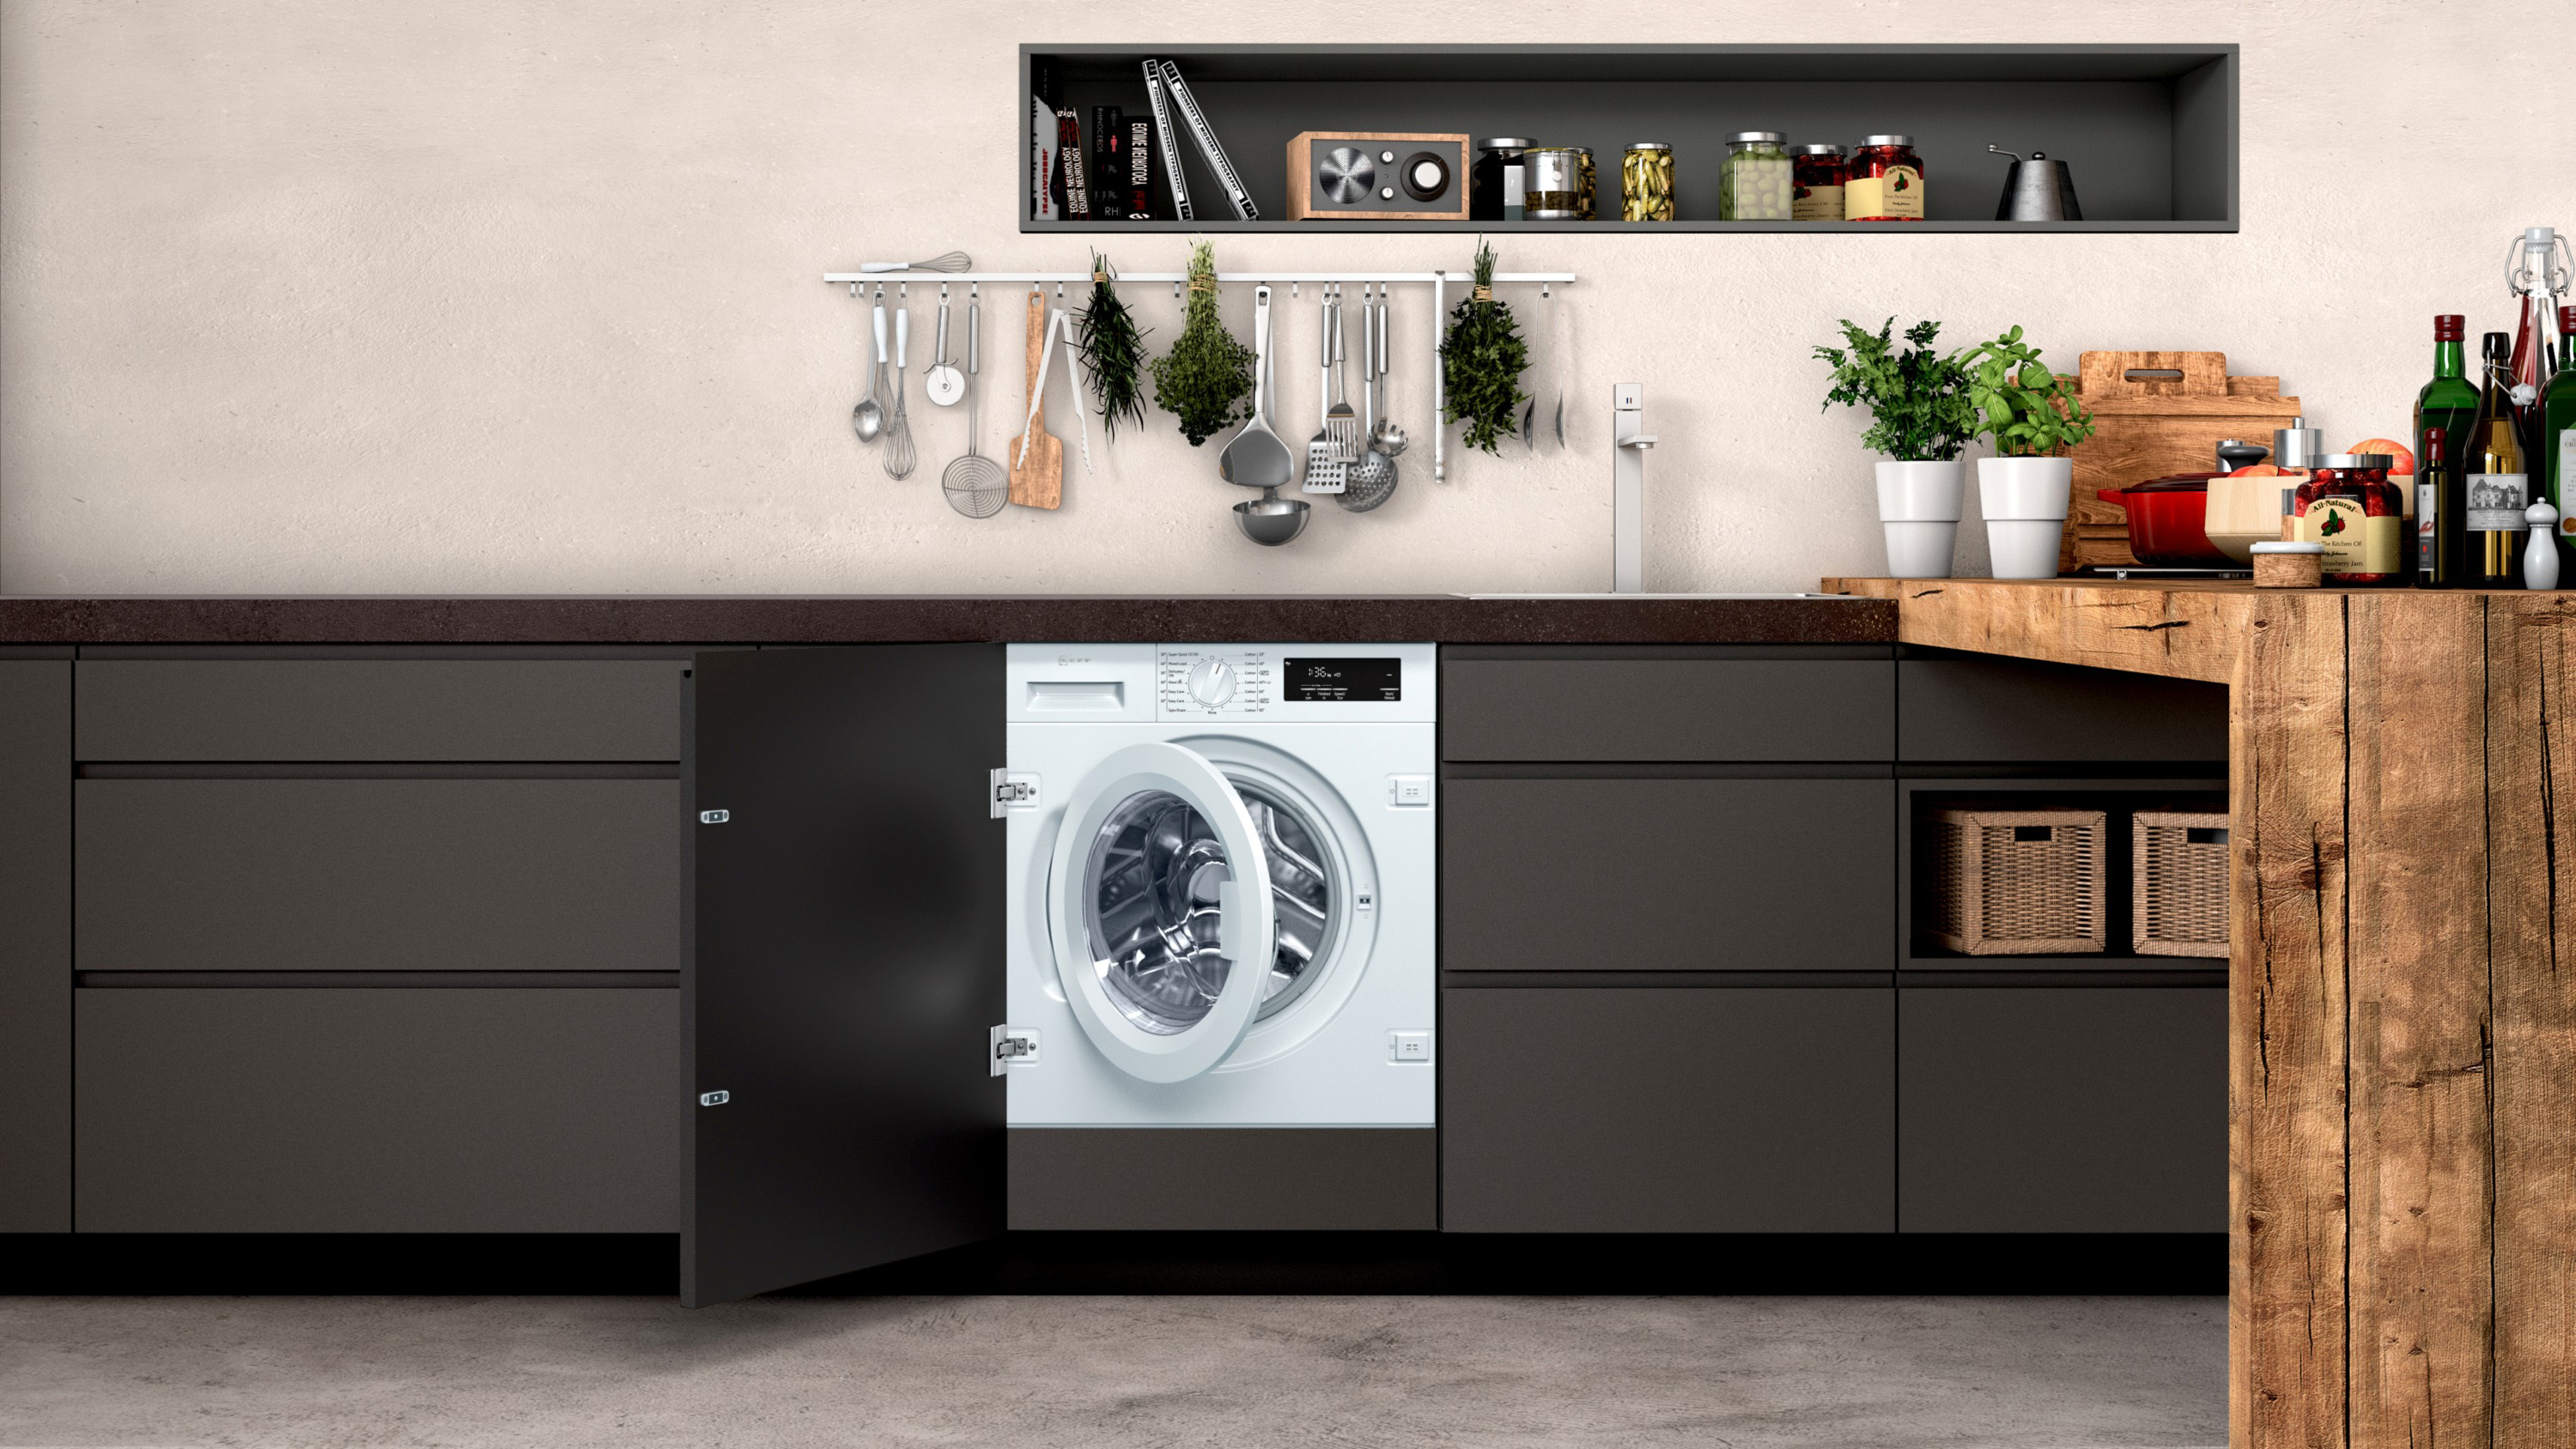 Best Integrated Washing Machine 2020 5 Built In Washing Machines Real Homes